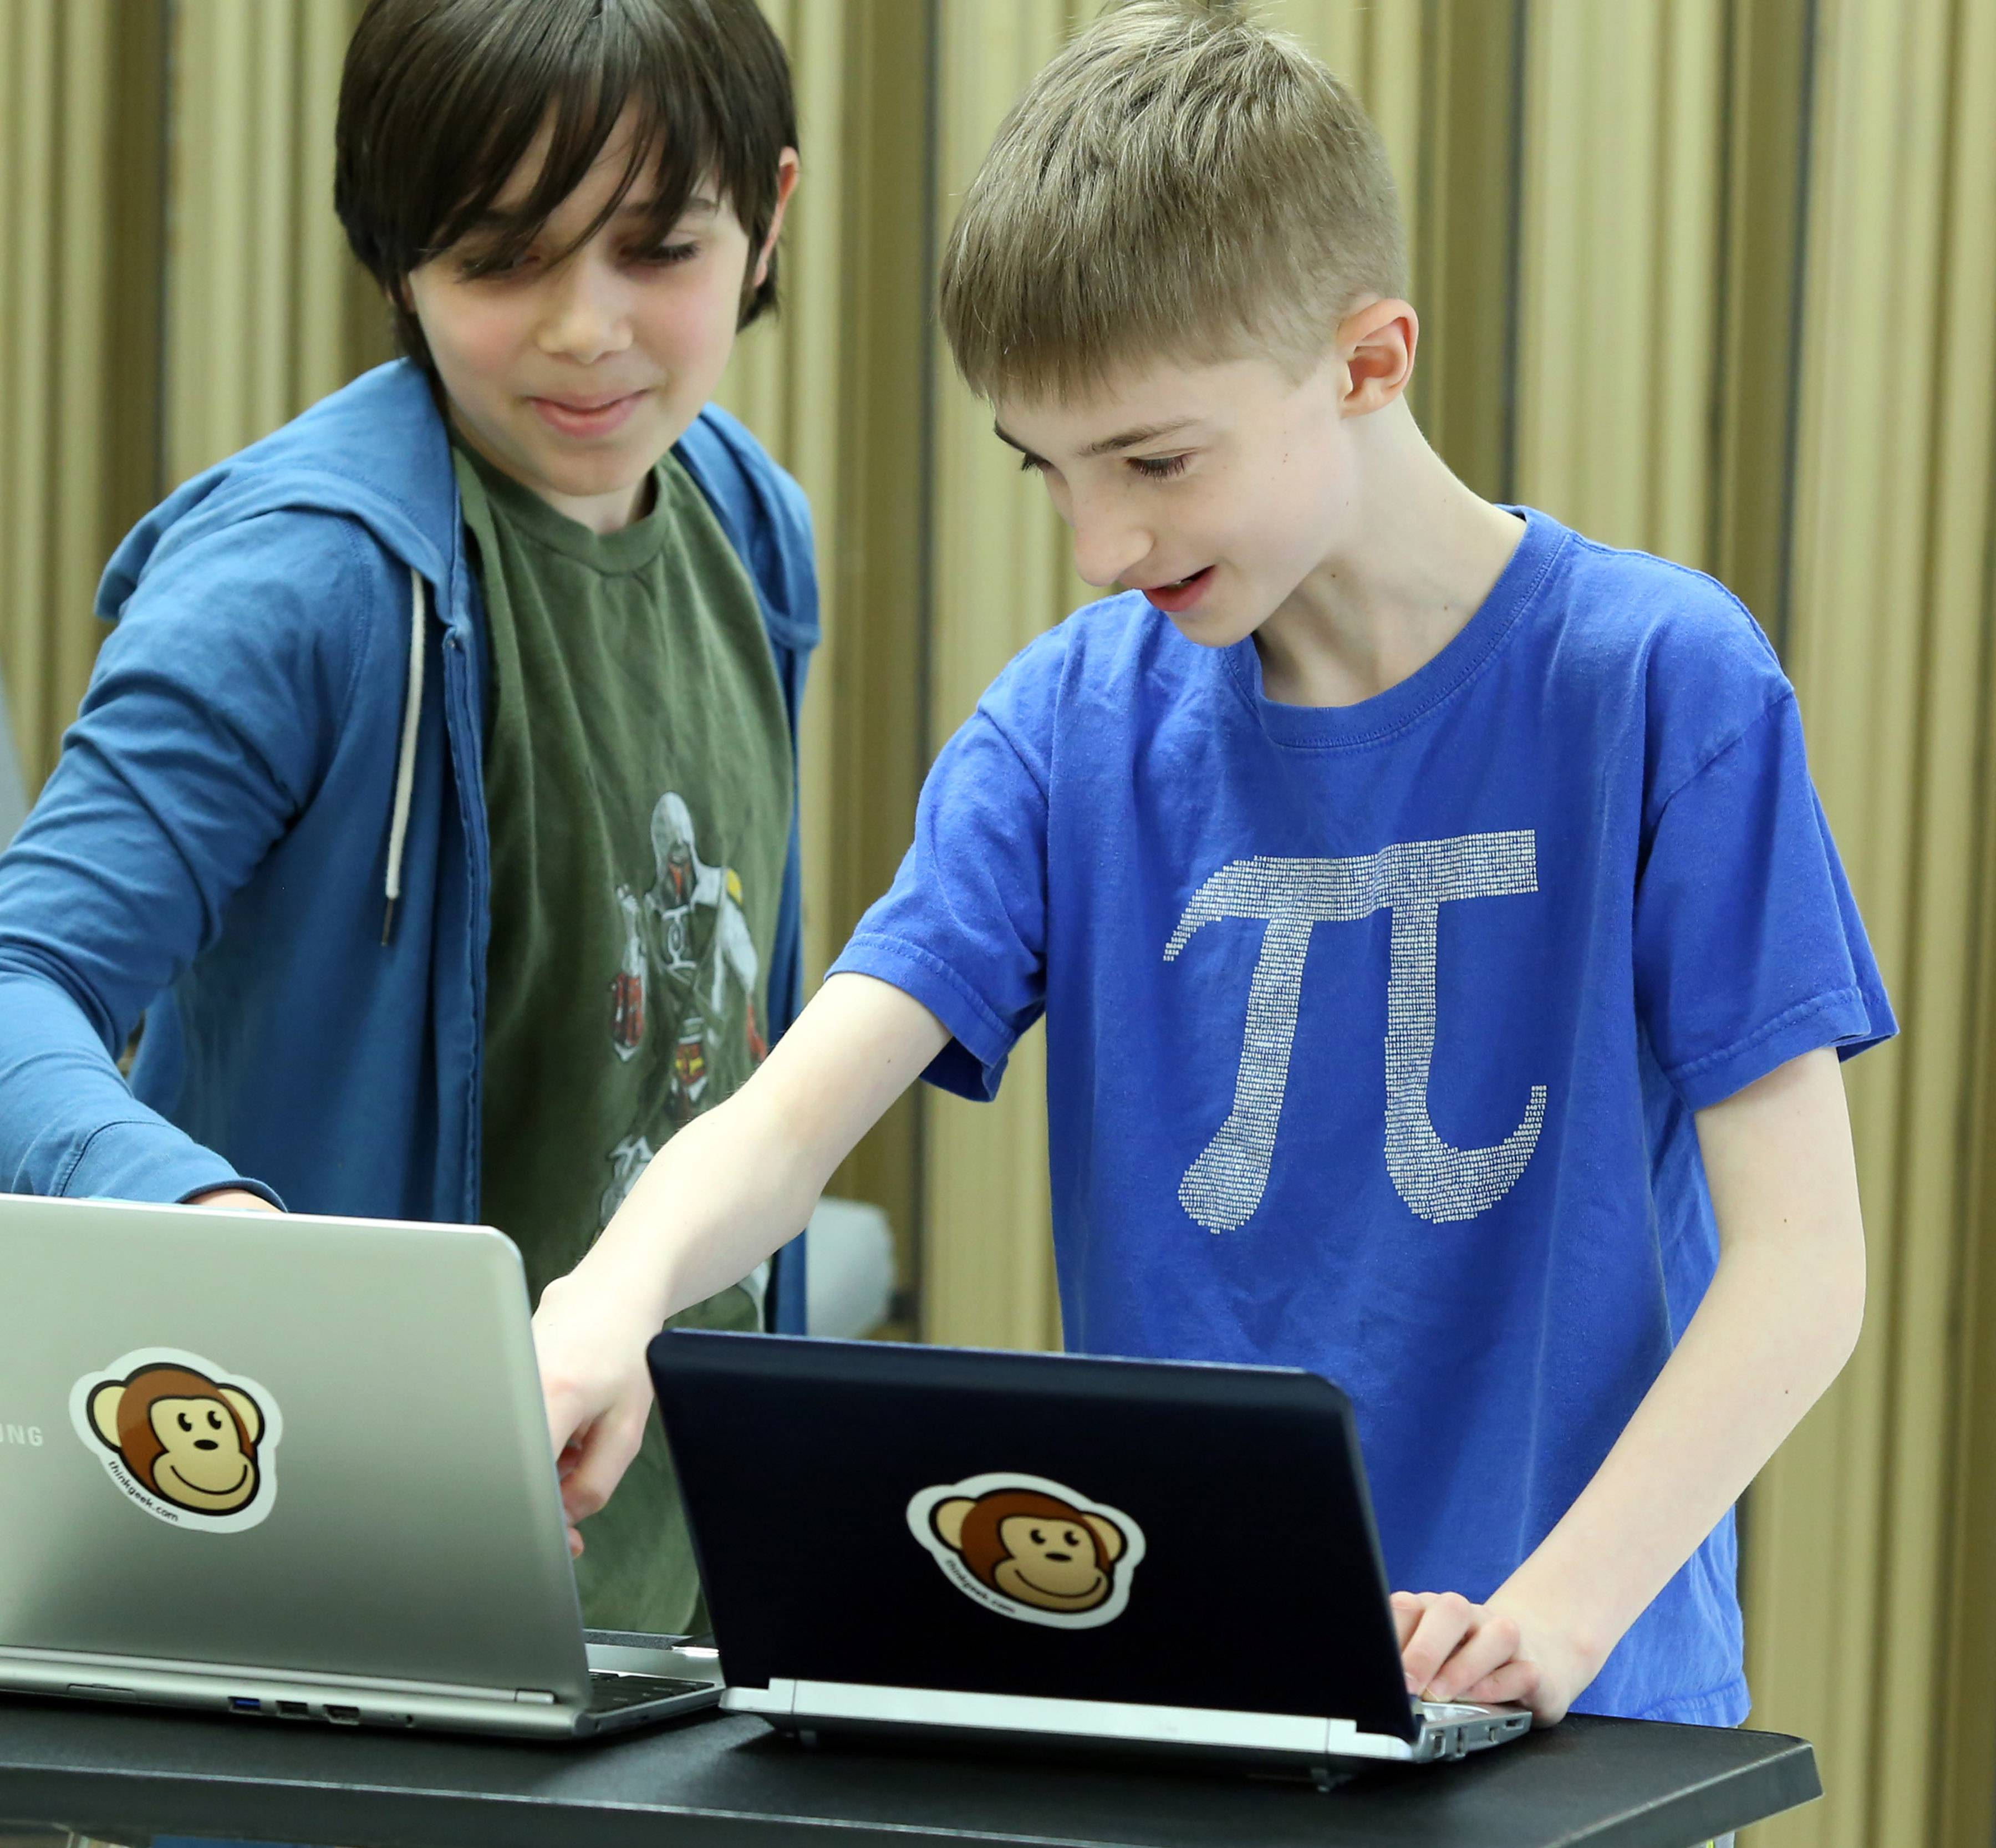 Andy Merrill, 13, of Libertyville, wearing his favorite T-shirt, pi, discusses a new programing language he is using on his laptop with Asher Hoeveler, 11, of Evanston, left, during a Curiosity Hacked Guild meeting.